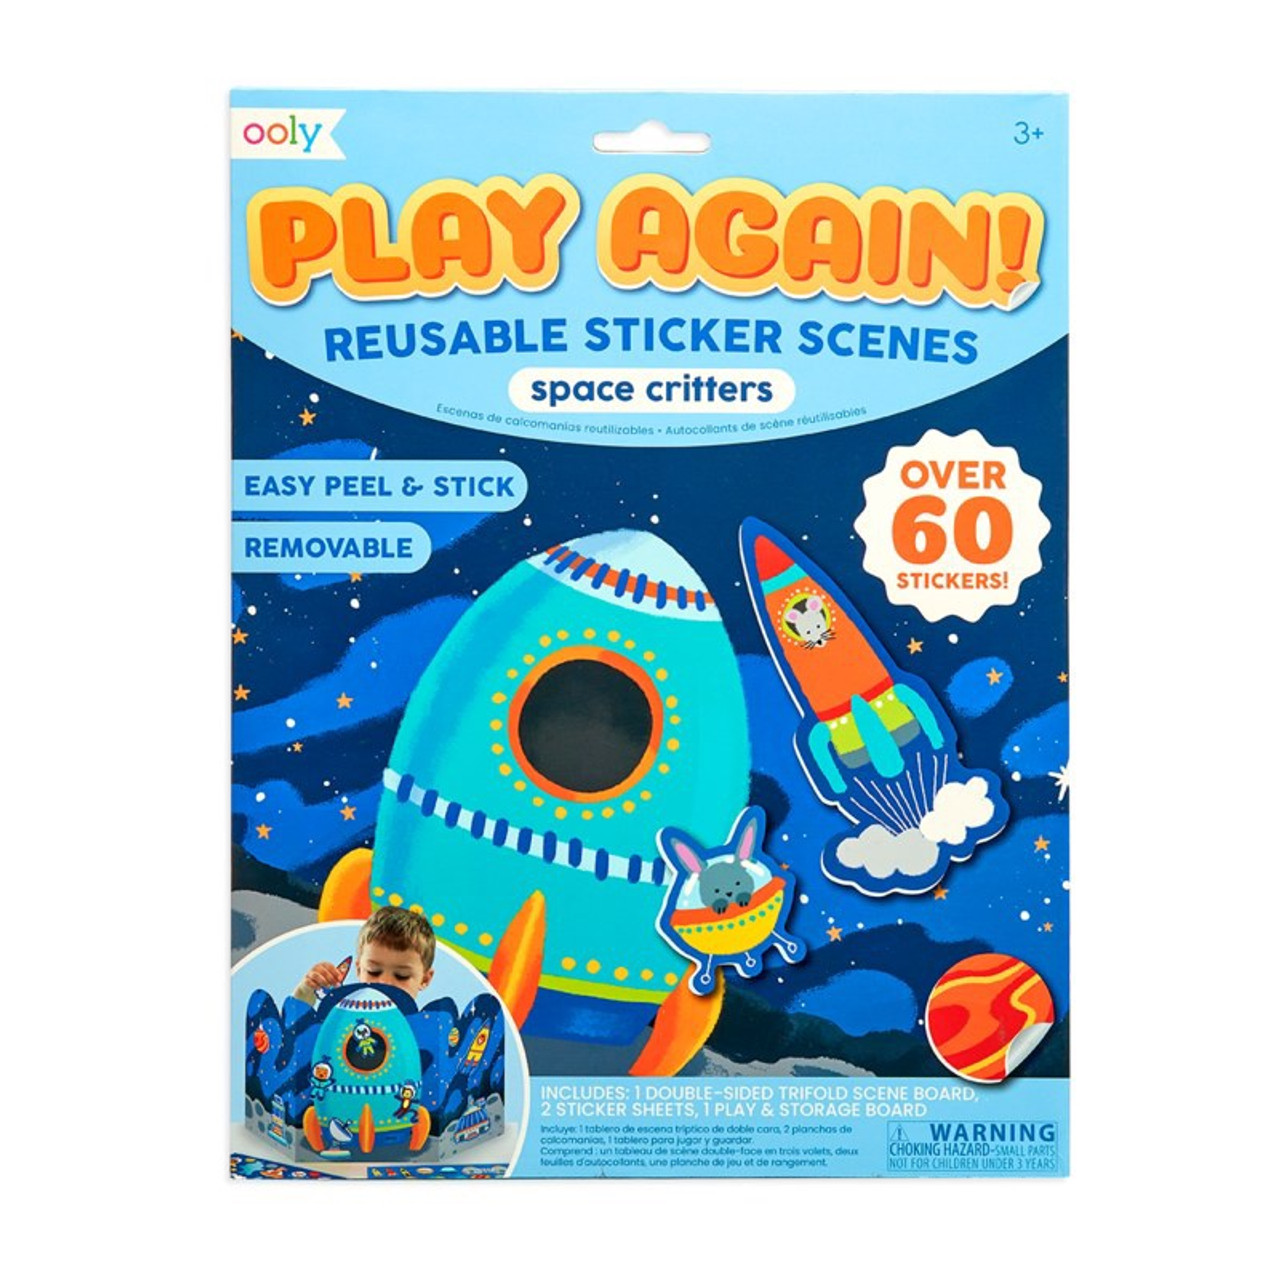 PLAY AGAIN SPACE CRITTERS